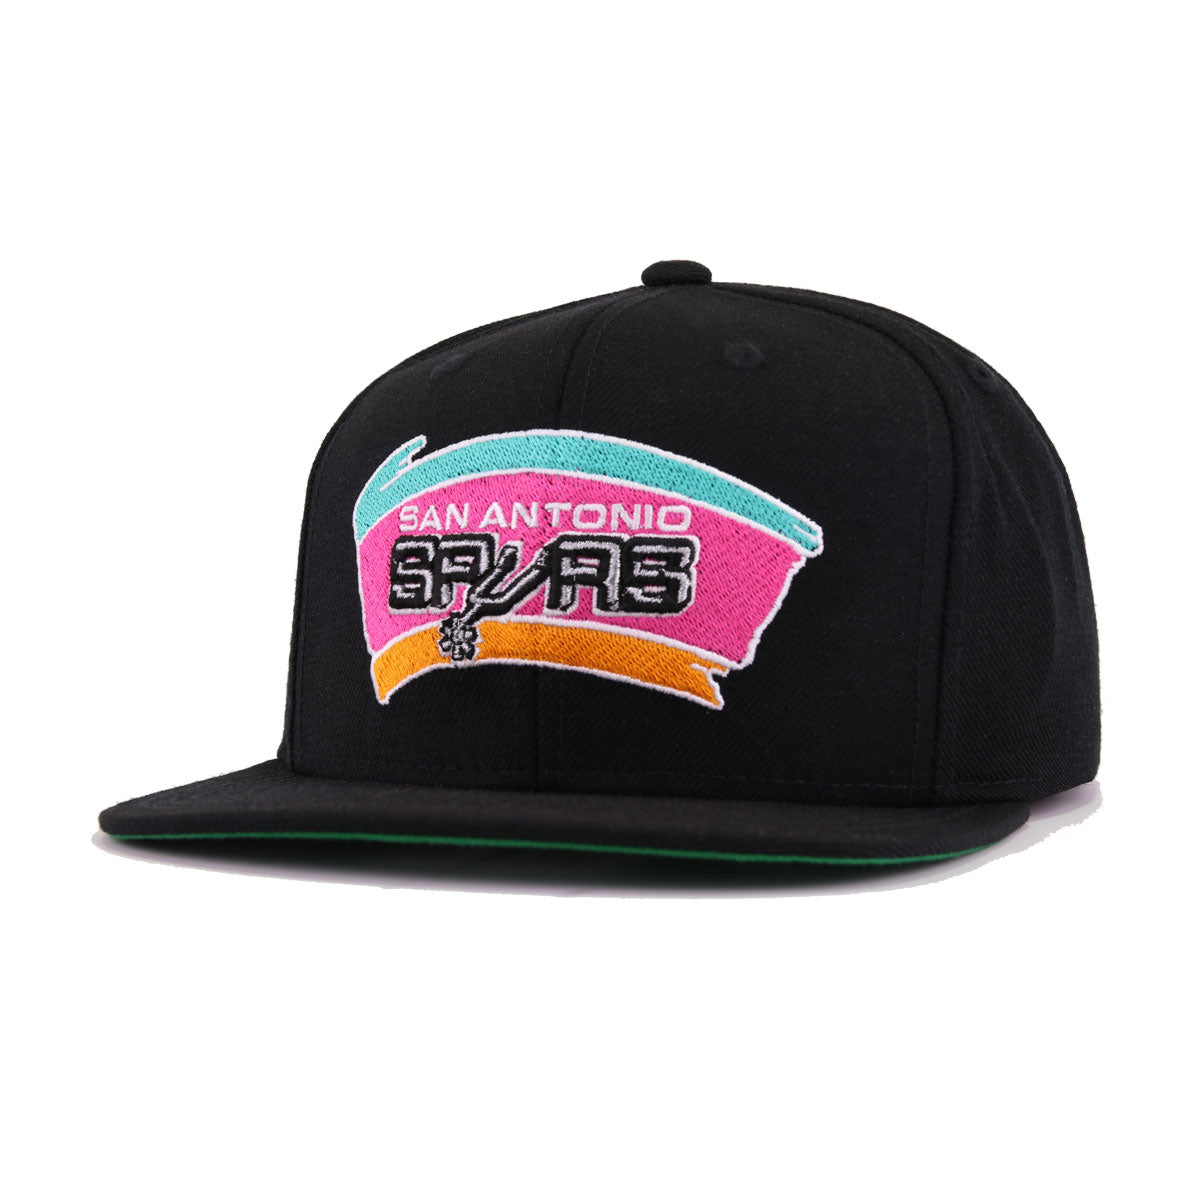 info for b2c68 9346c San Antonio Spurs Black Hardwood Classic Mitchell and Ness Snapback